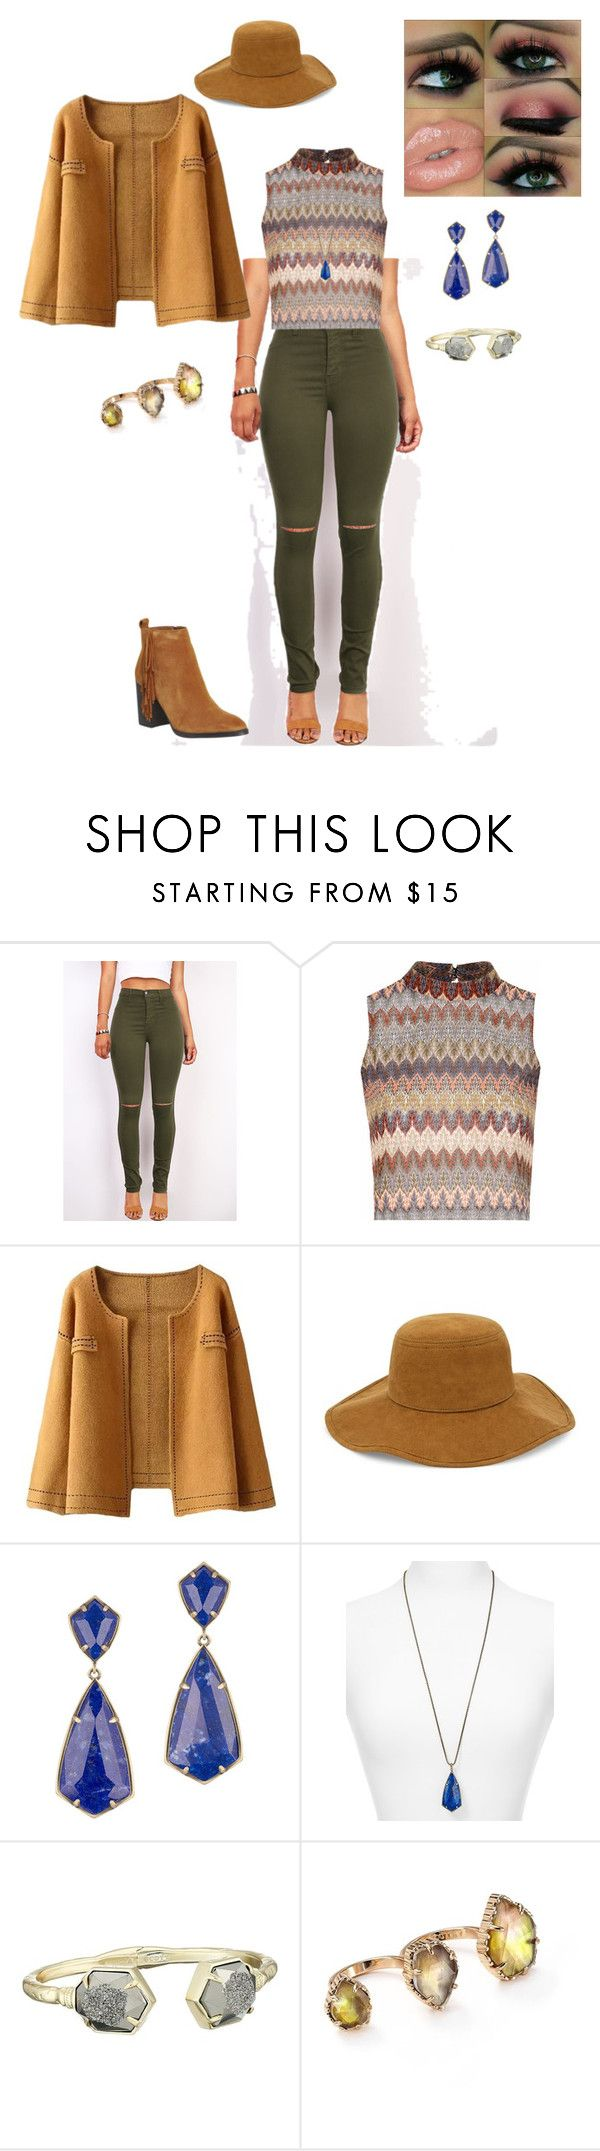 """""""Kendra Scott"""" Cold Days outfit by Sidney Blair on Polyvore featuring Glamorous, Chico's, Kendra Scott, Office, women's clothing, women, female, woman, misses and juniors"""